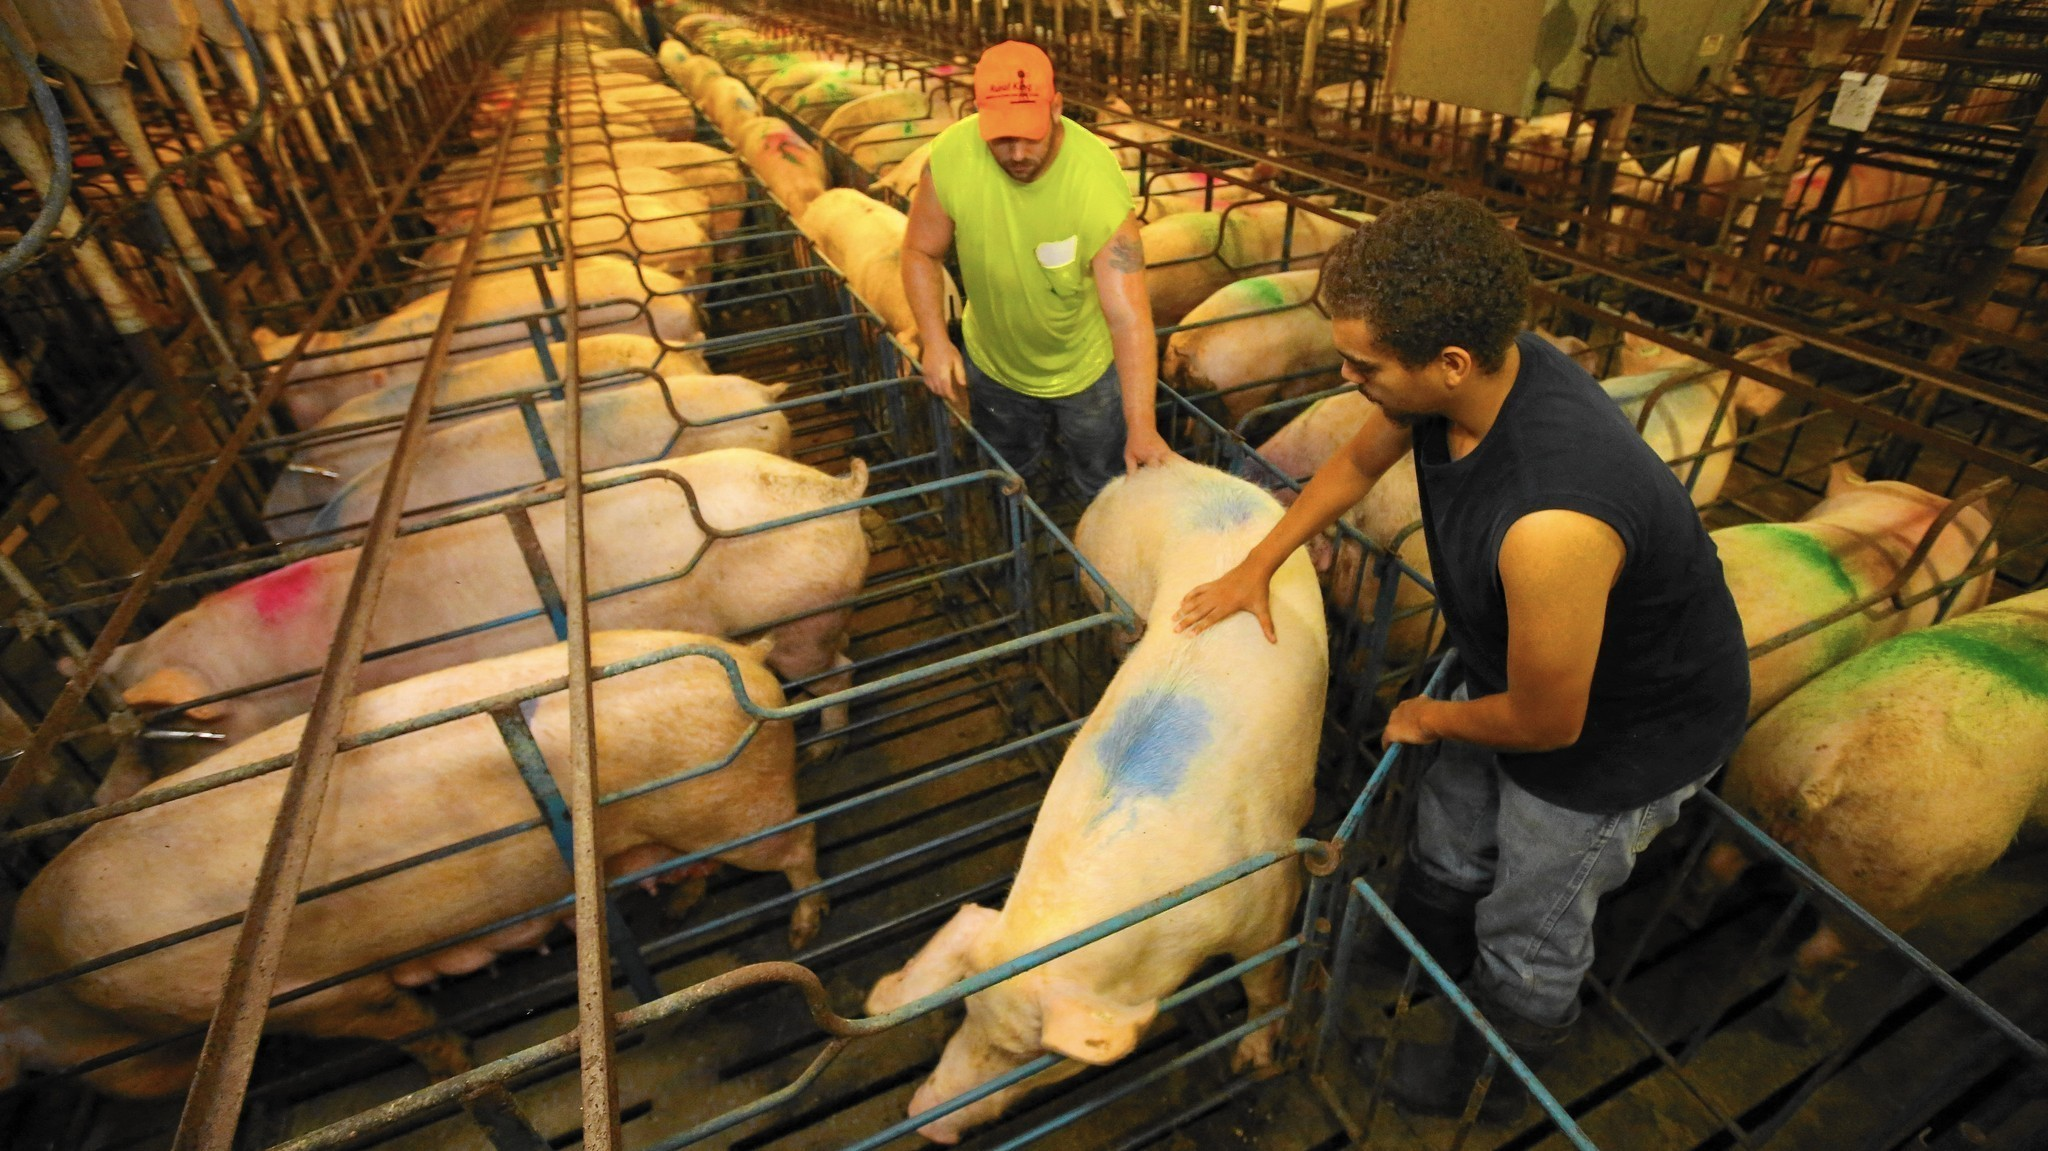 Pork Producers Defend Gestation Crates But Consumers